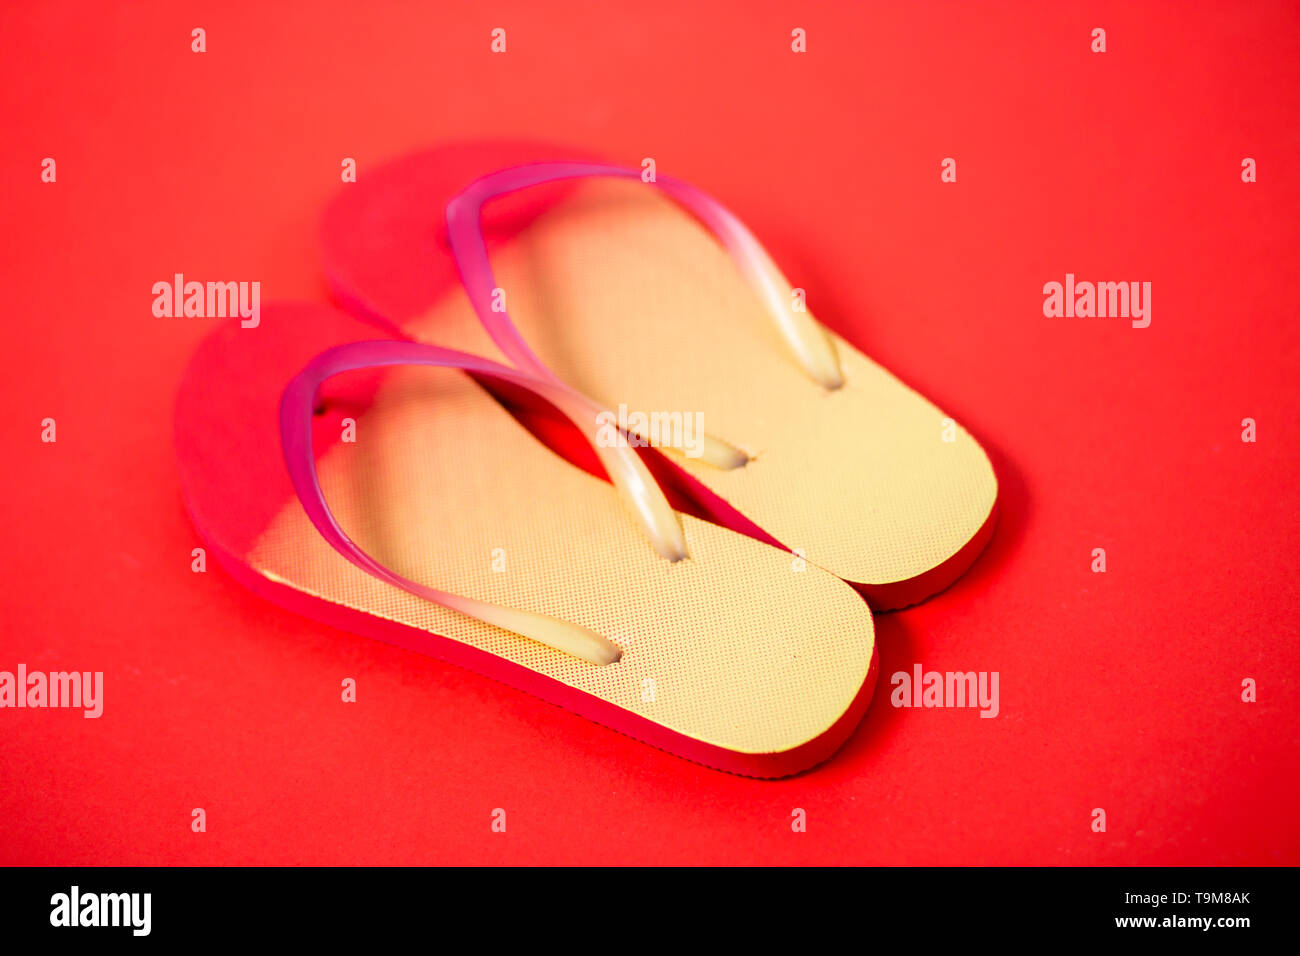 Yellow pink flip flops on red background. Flat lay, horizontal shot, close up. Summer, vacation, beach, shoes concept - Stock Image